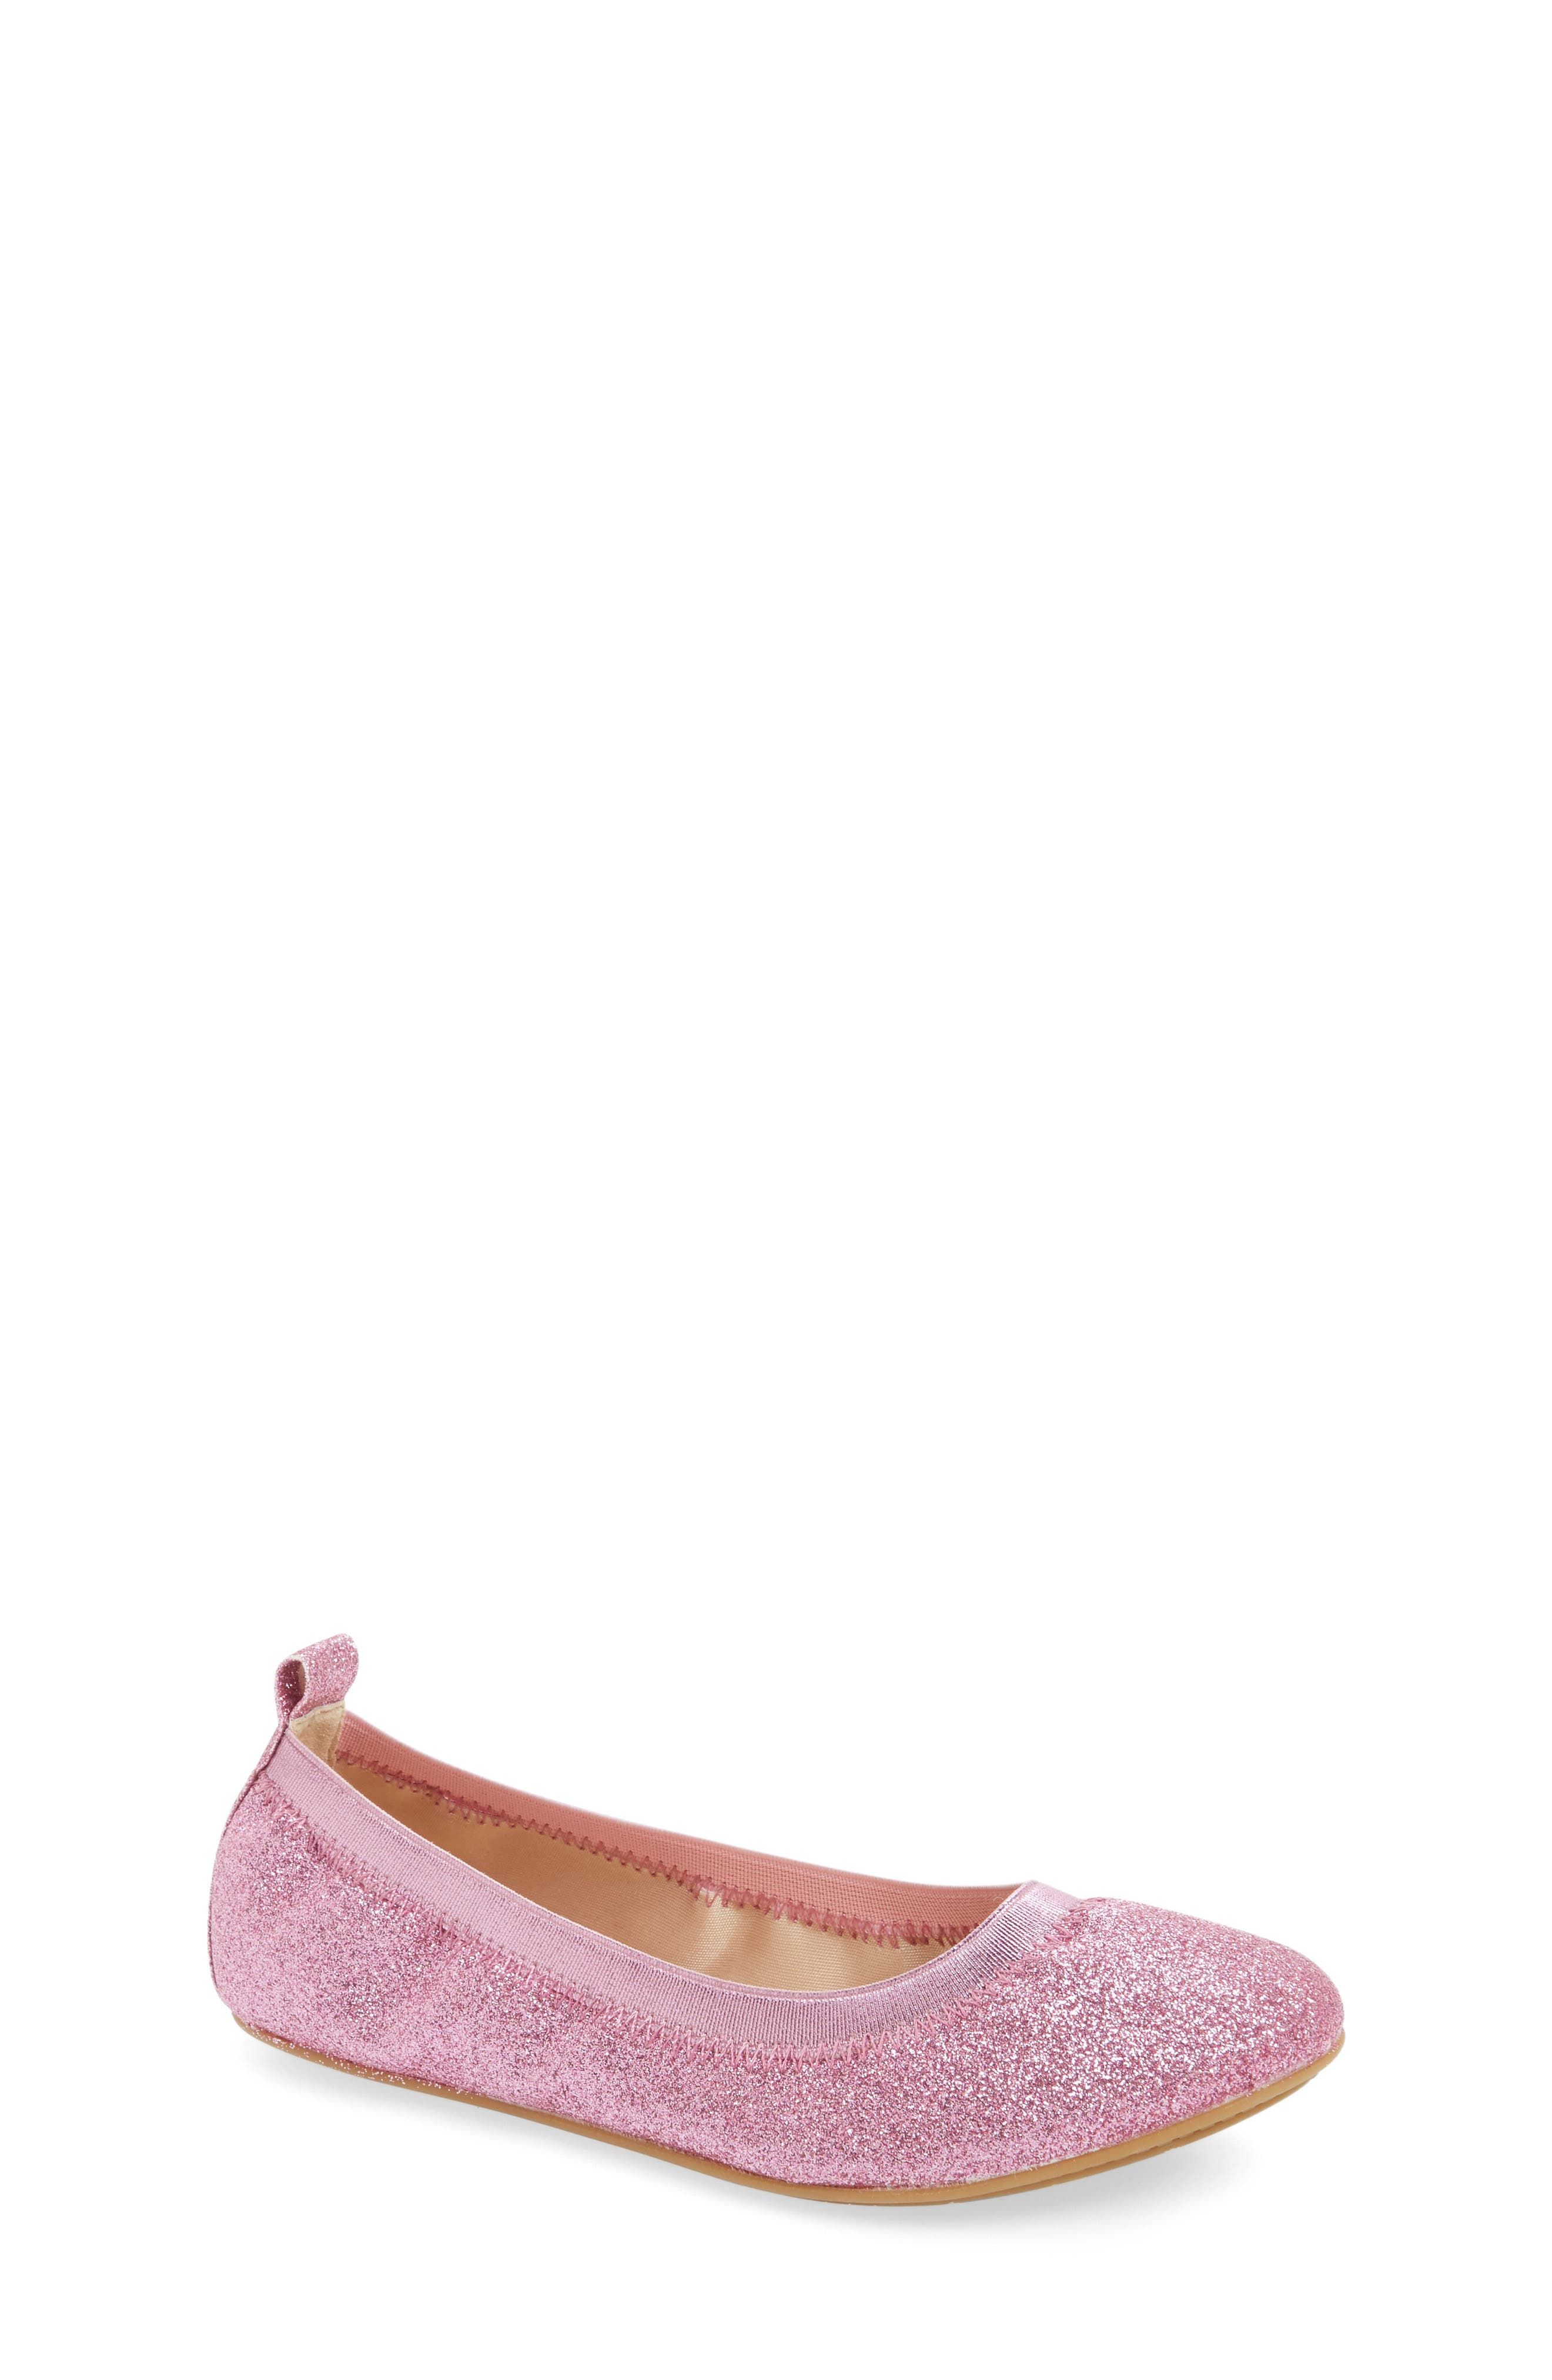 Yosi Samra Ballet Flat (Walker, Toddler, Little Kid & Big Kid)